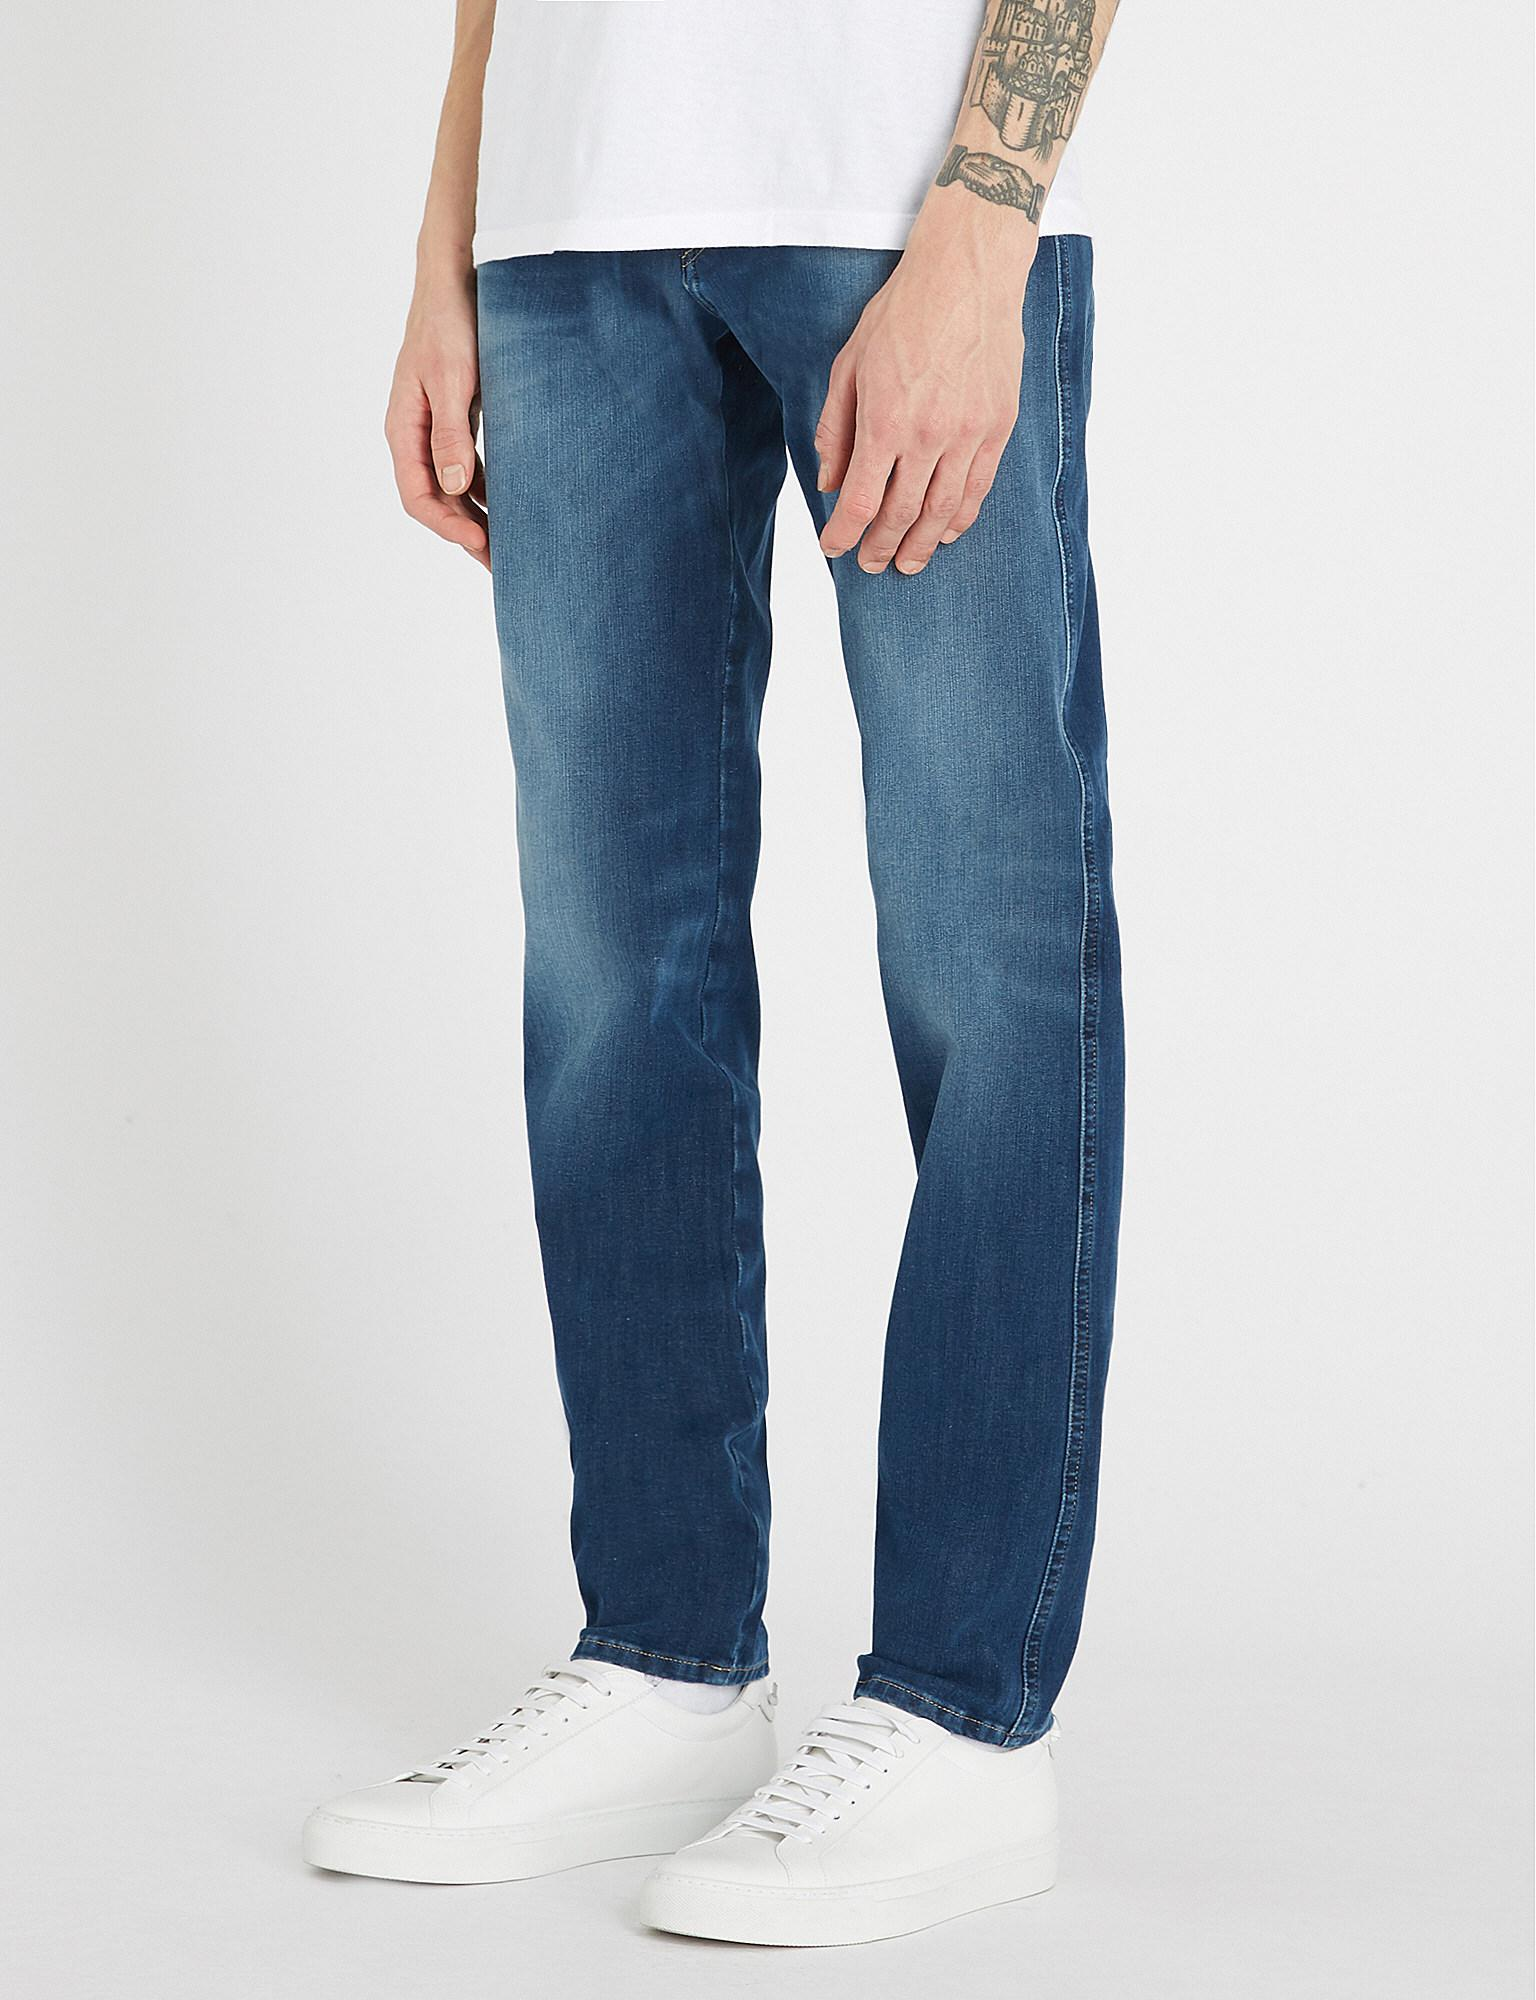 88160f00e27 Replay Hyperflex Plus Stretch-denim Jeans in Blue for Men - Lyst